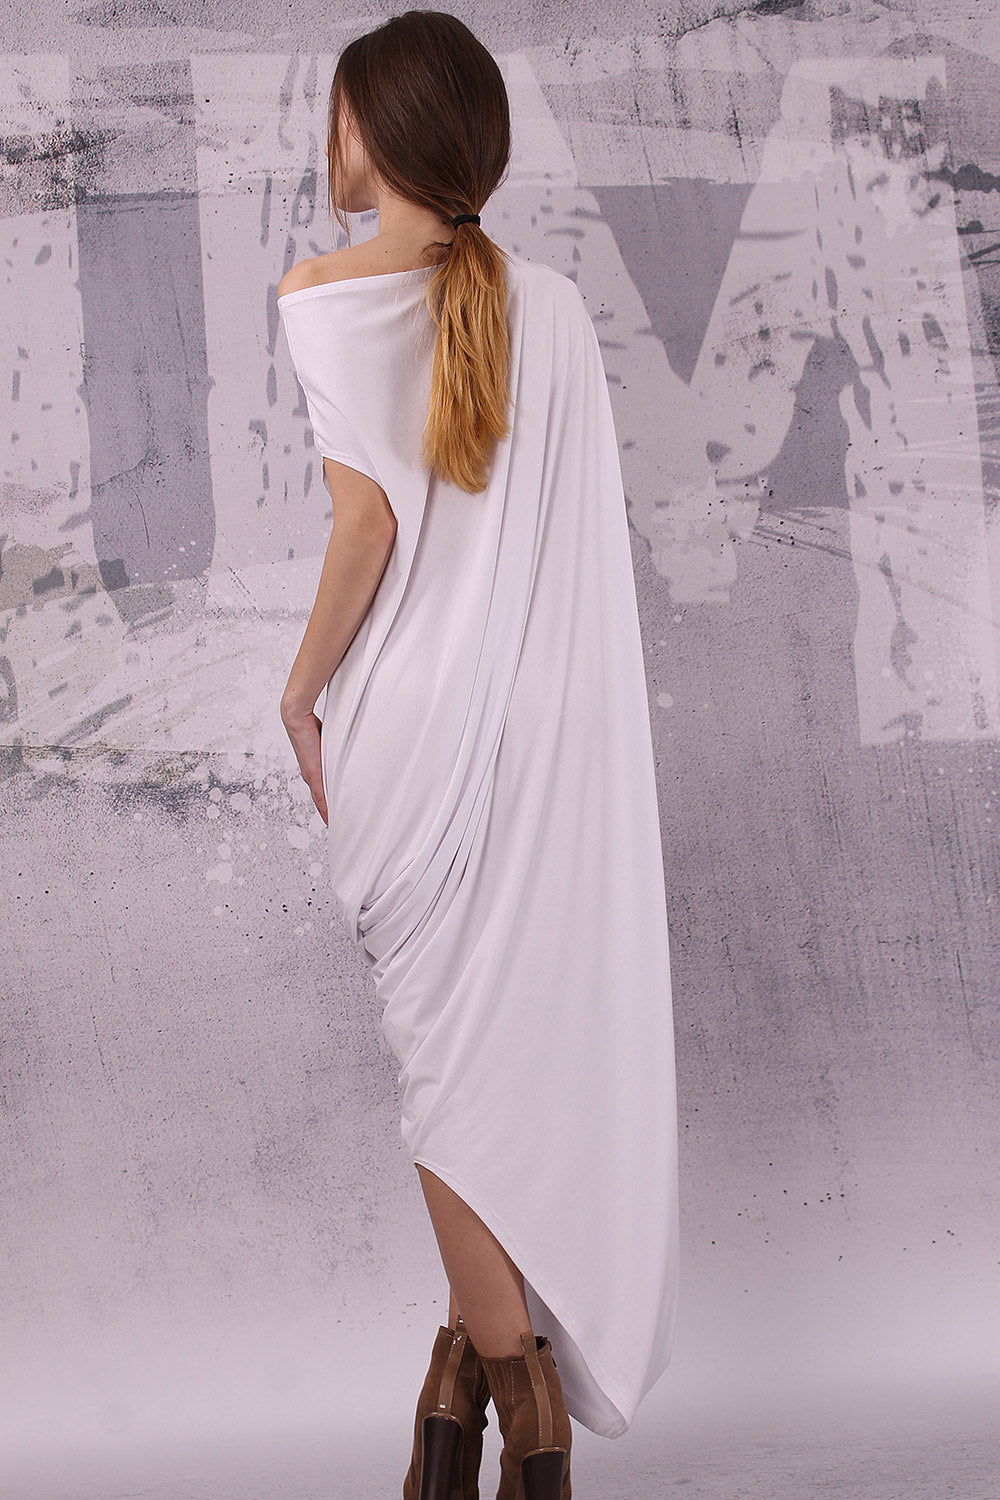 White loose maxi dress with very short sleeves, plus size dress, oversized tunic dress, long tunic dress,  - UM-028-VL